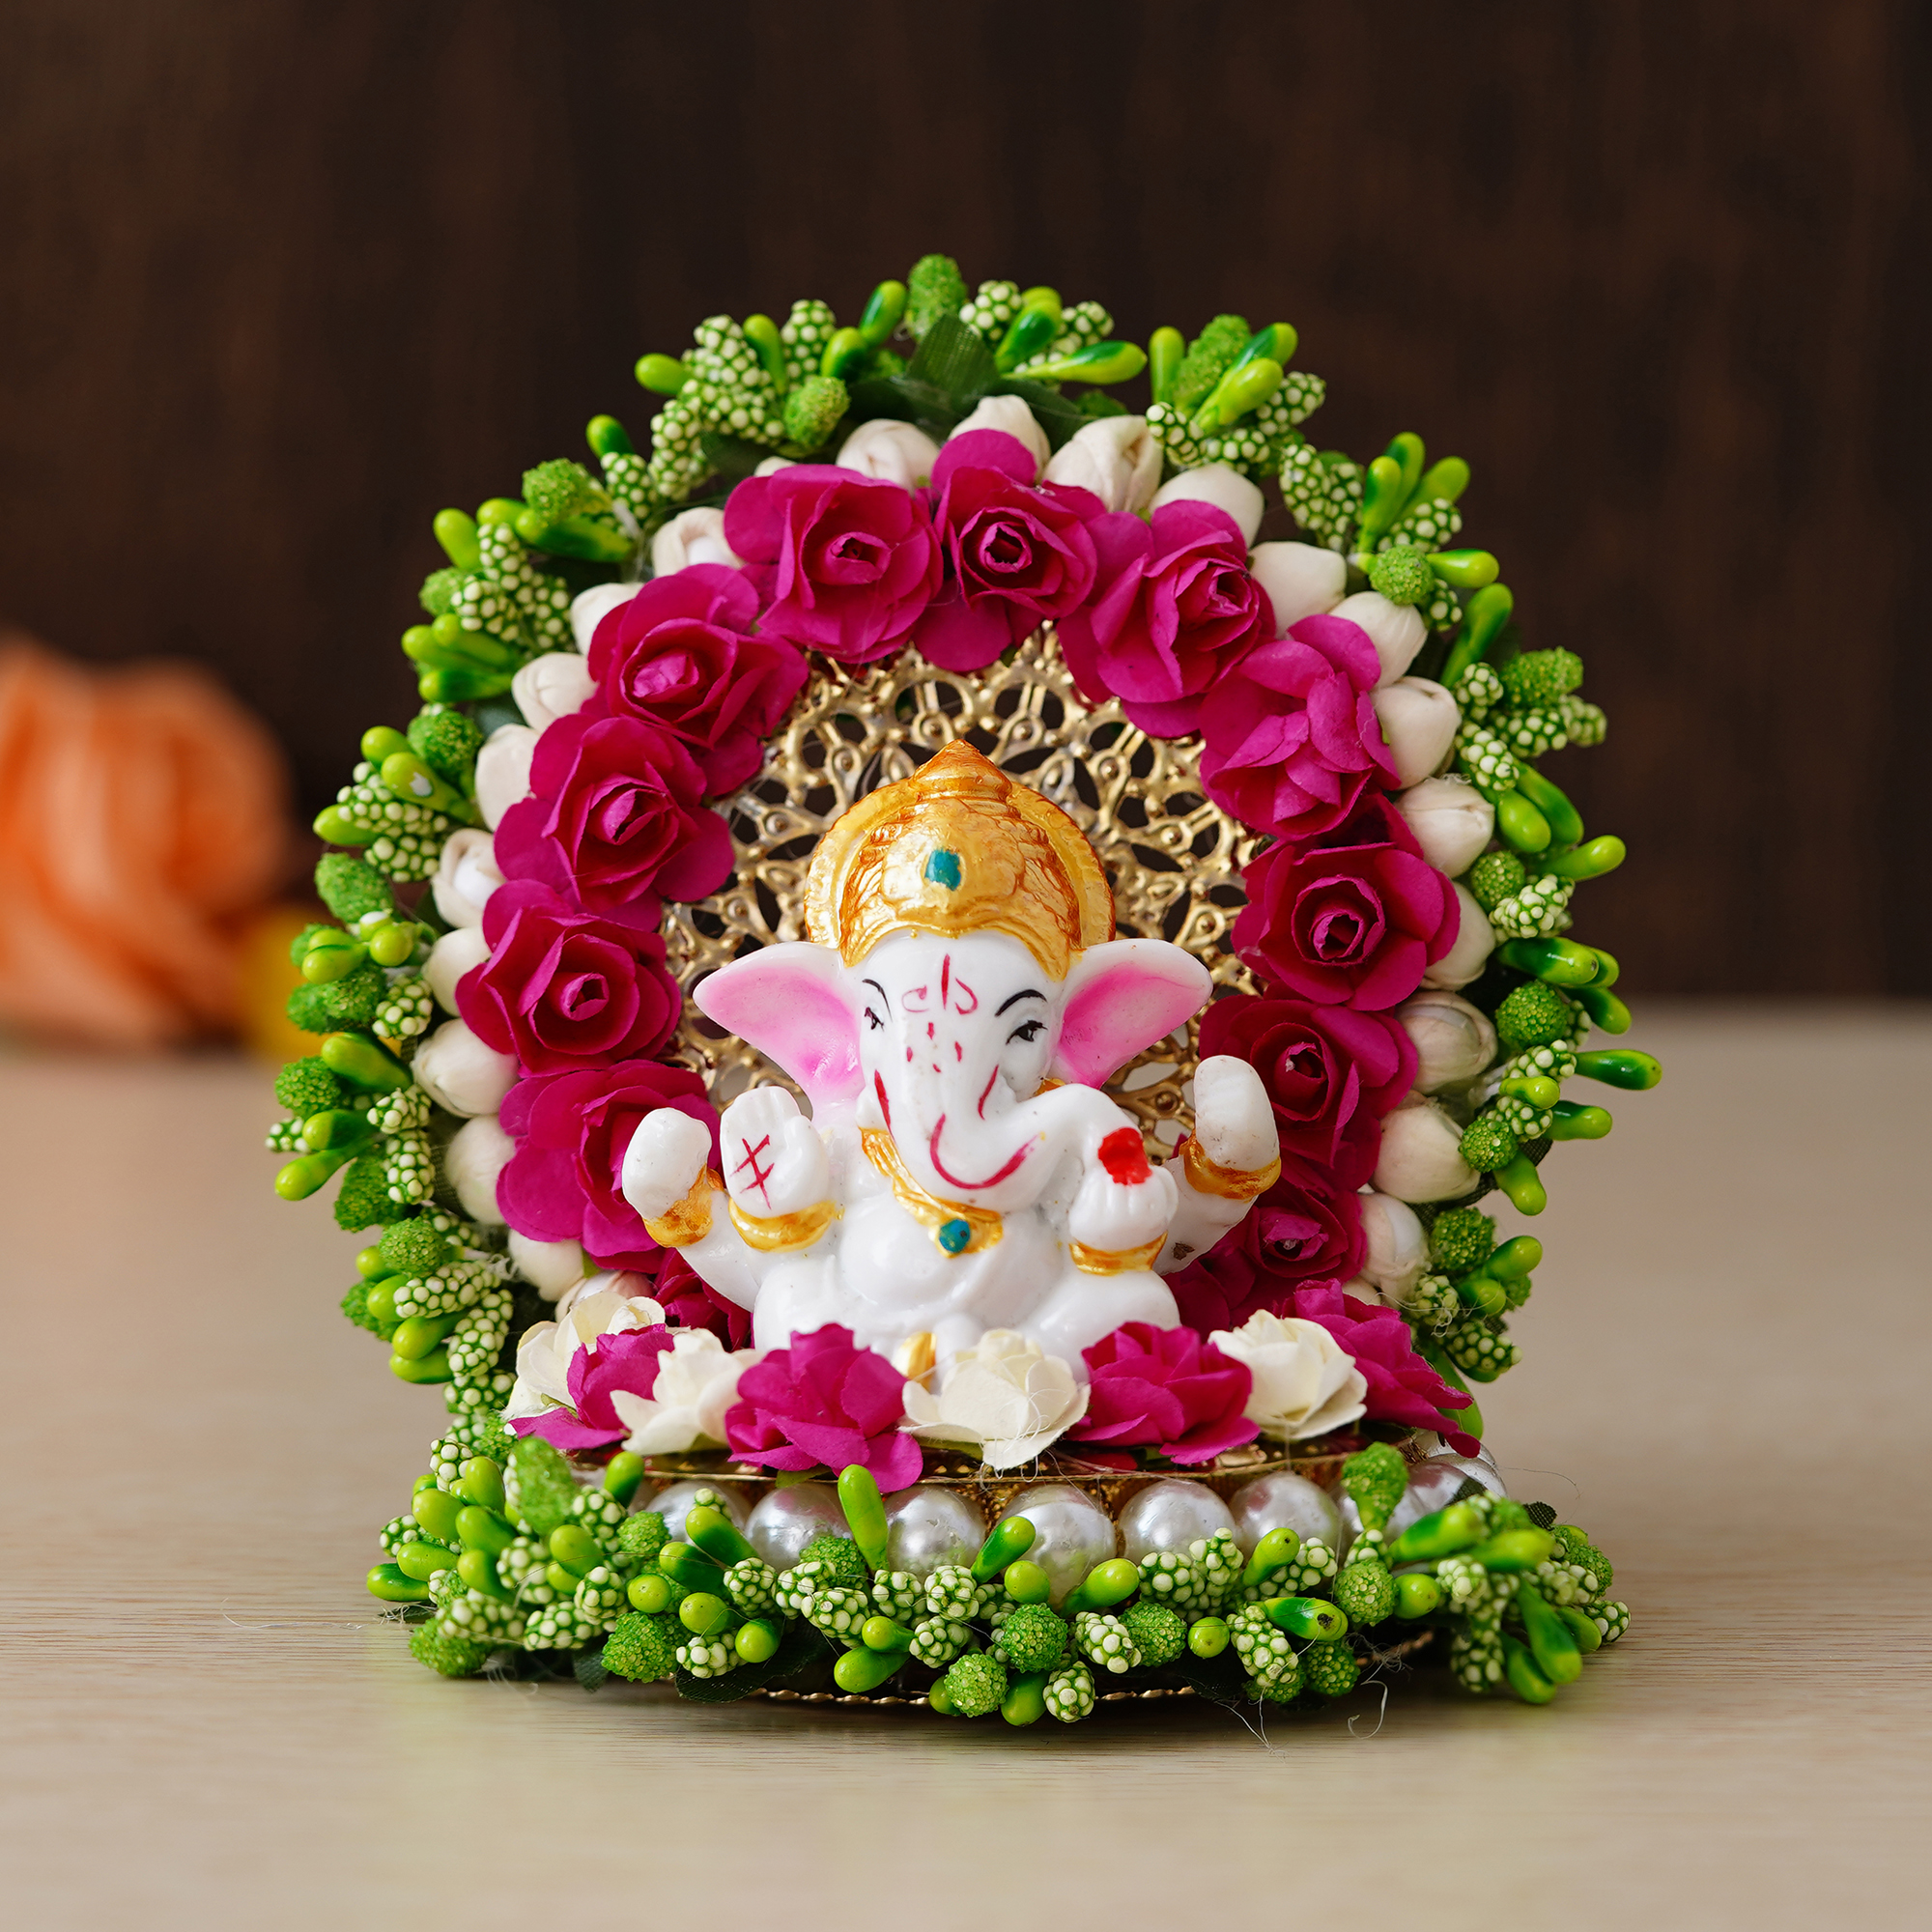 Lord Ganesha Idol on Decorative Handcrafted Green Floral Plate for Home and Car Indian Home Decor